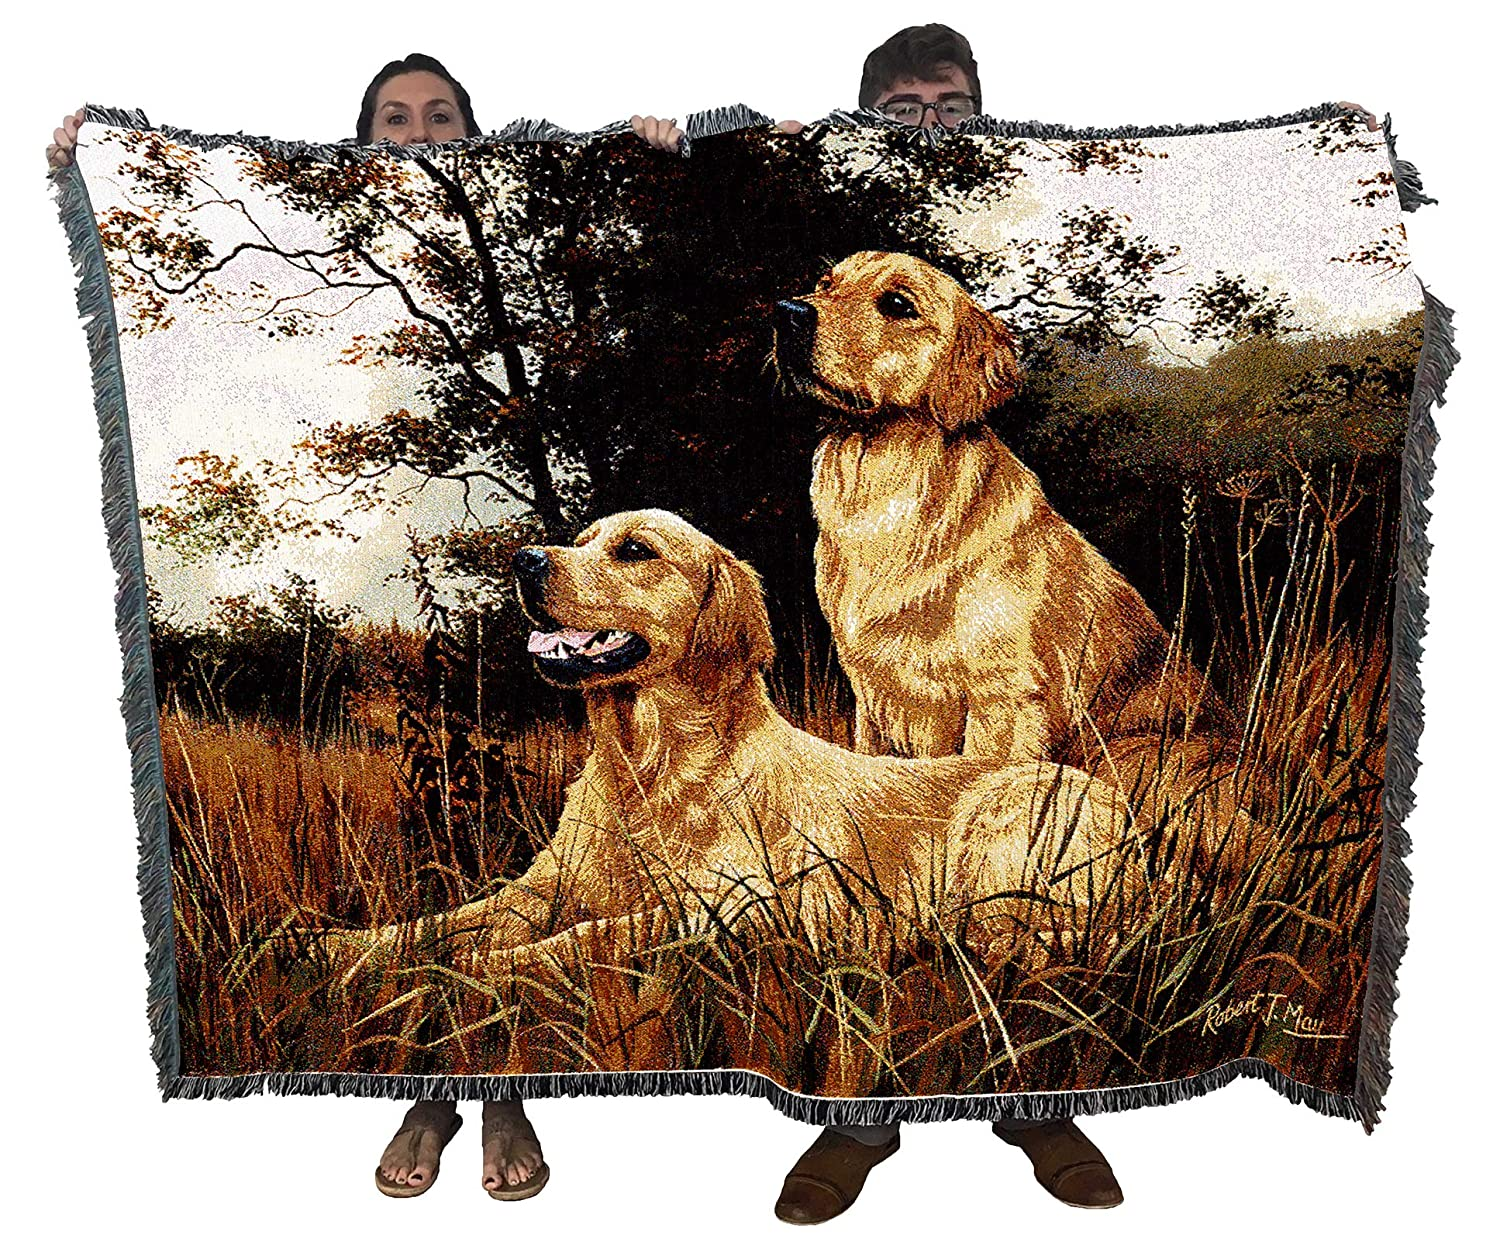 Pure Country Weavers - Golden Retriever Woven Tapestry Throw Blanket with Fringe Cotton USA Size 72 x 54